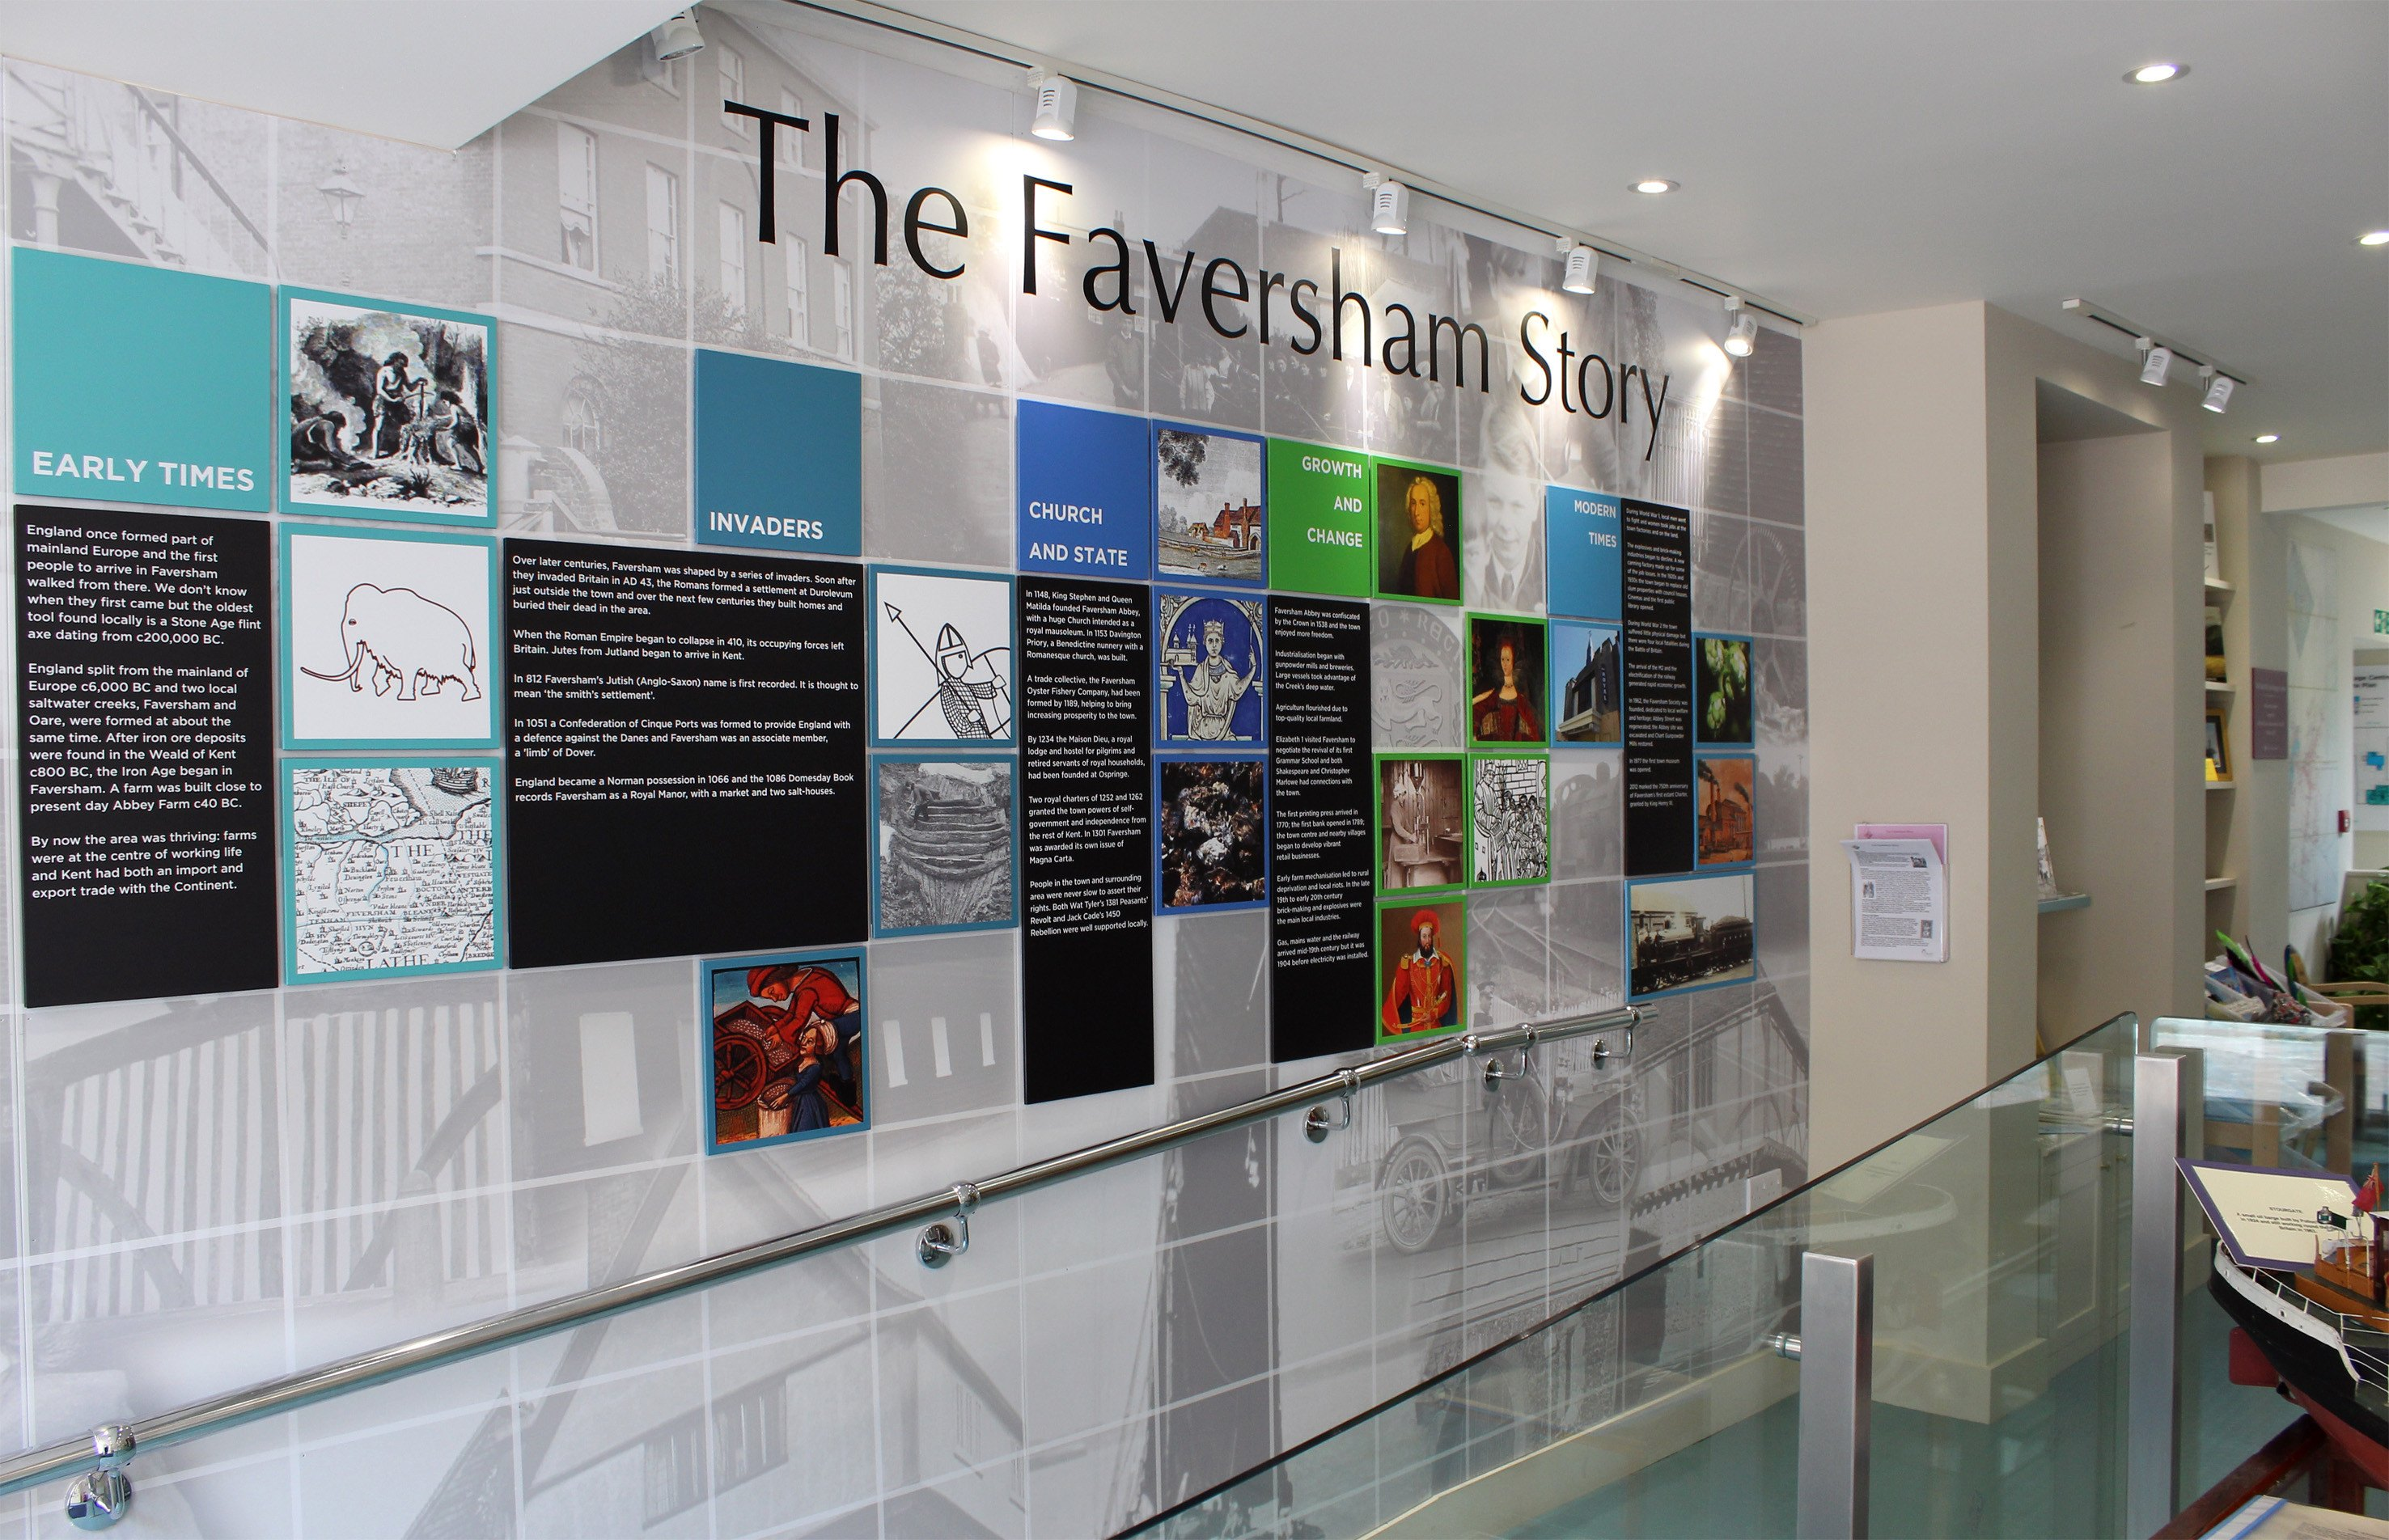 The Faversham Story